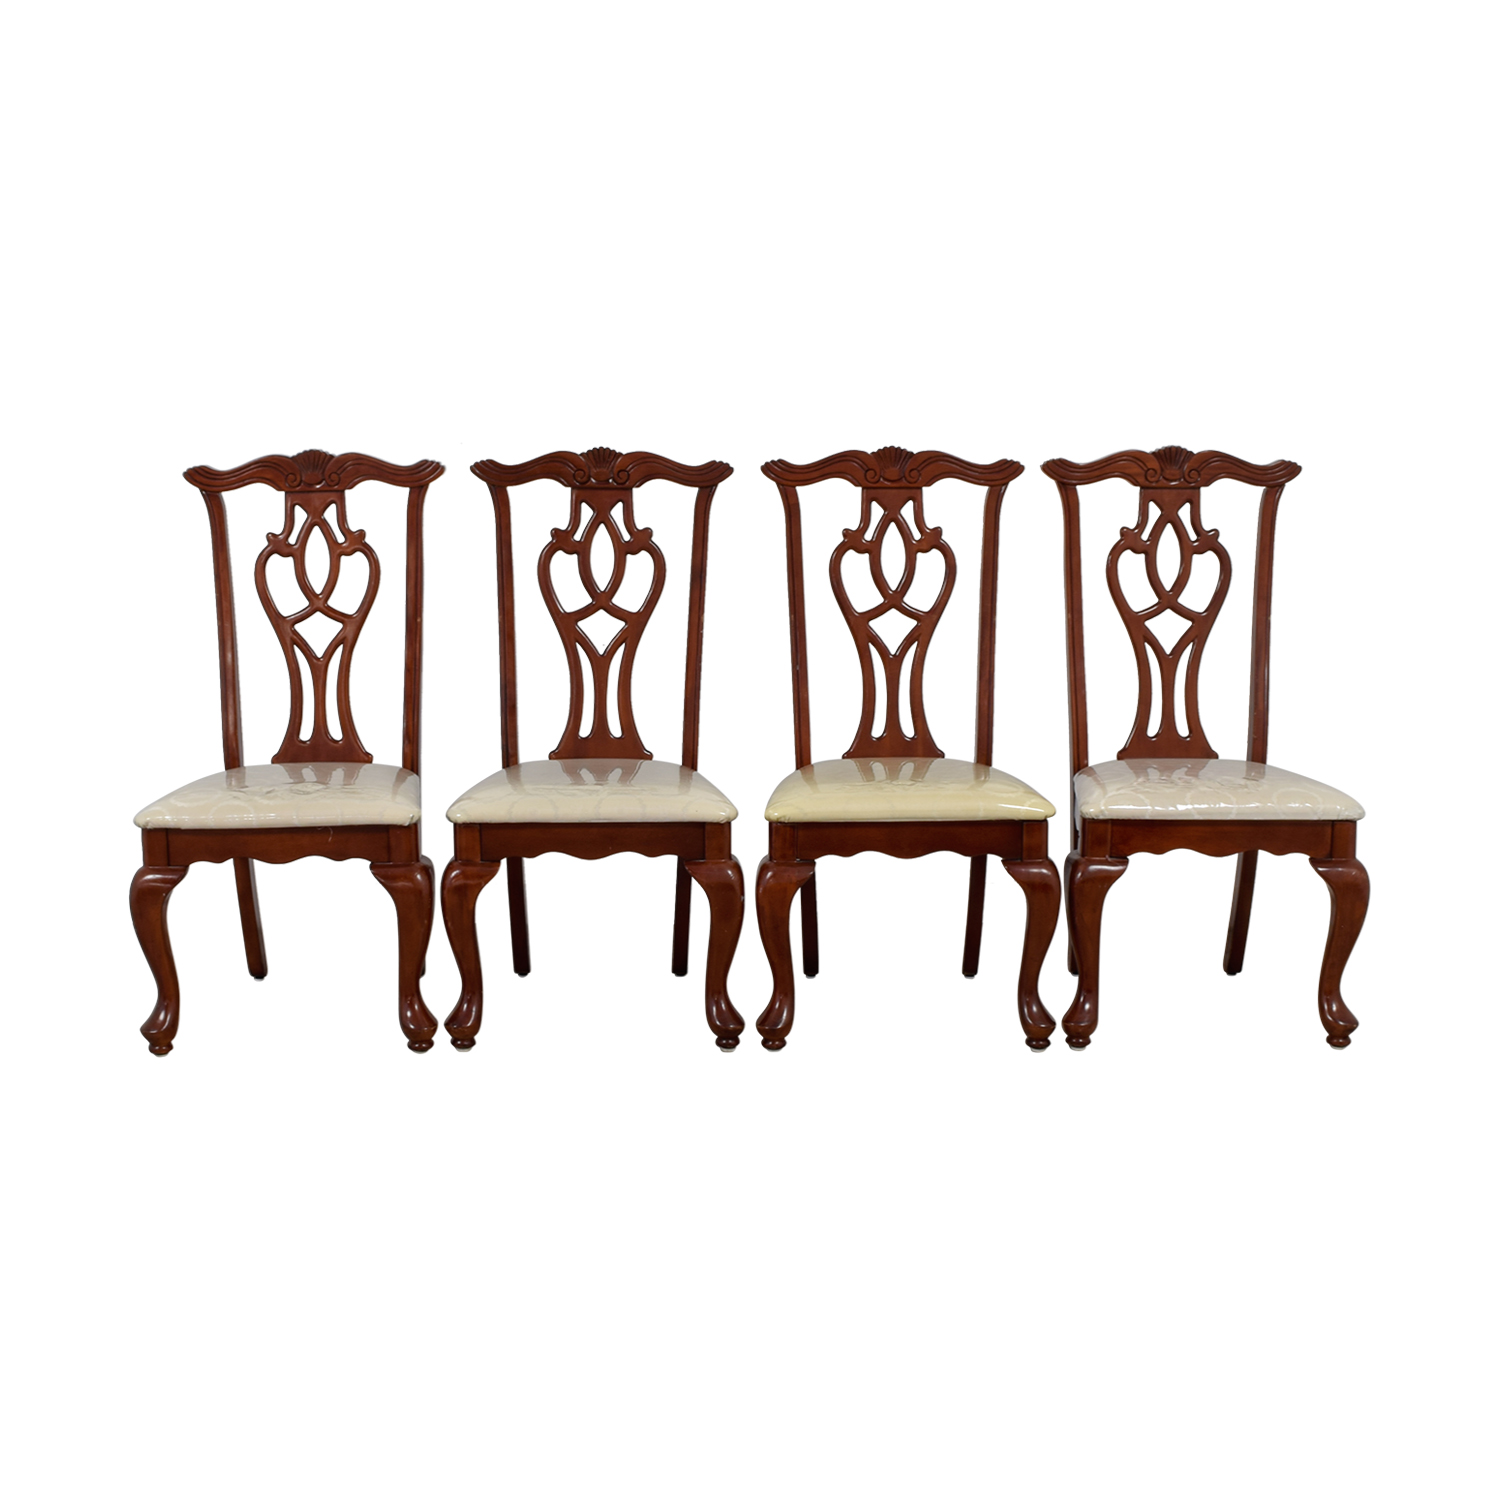 Cherry Wood Dining Chairs 87 Off Off White Upholstered Cherry Wood Dining Chairs